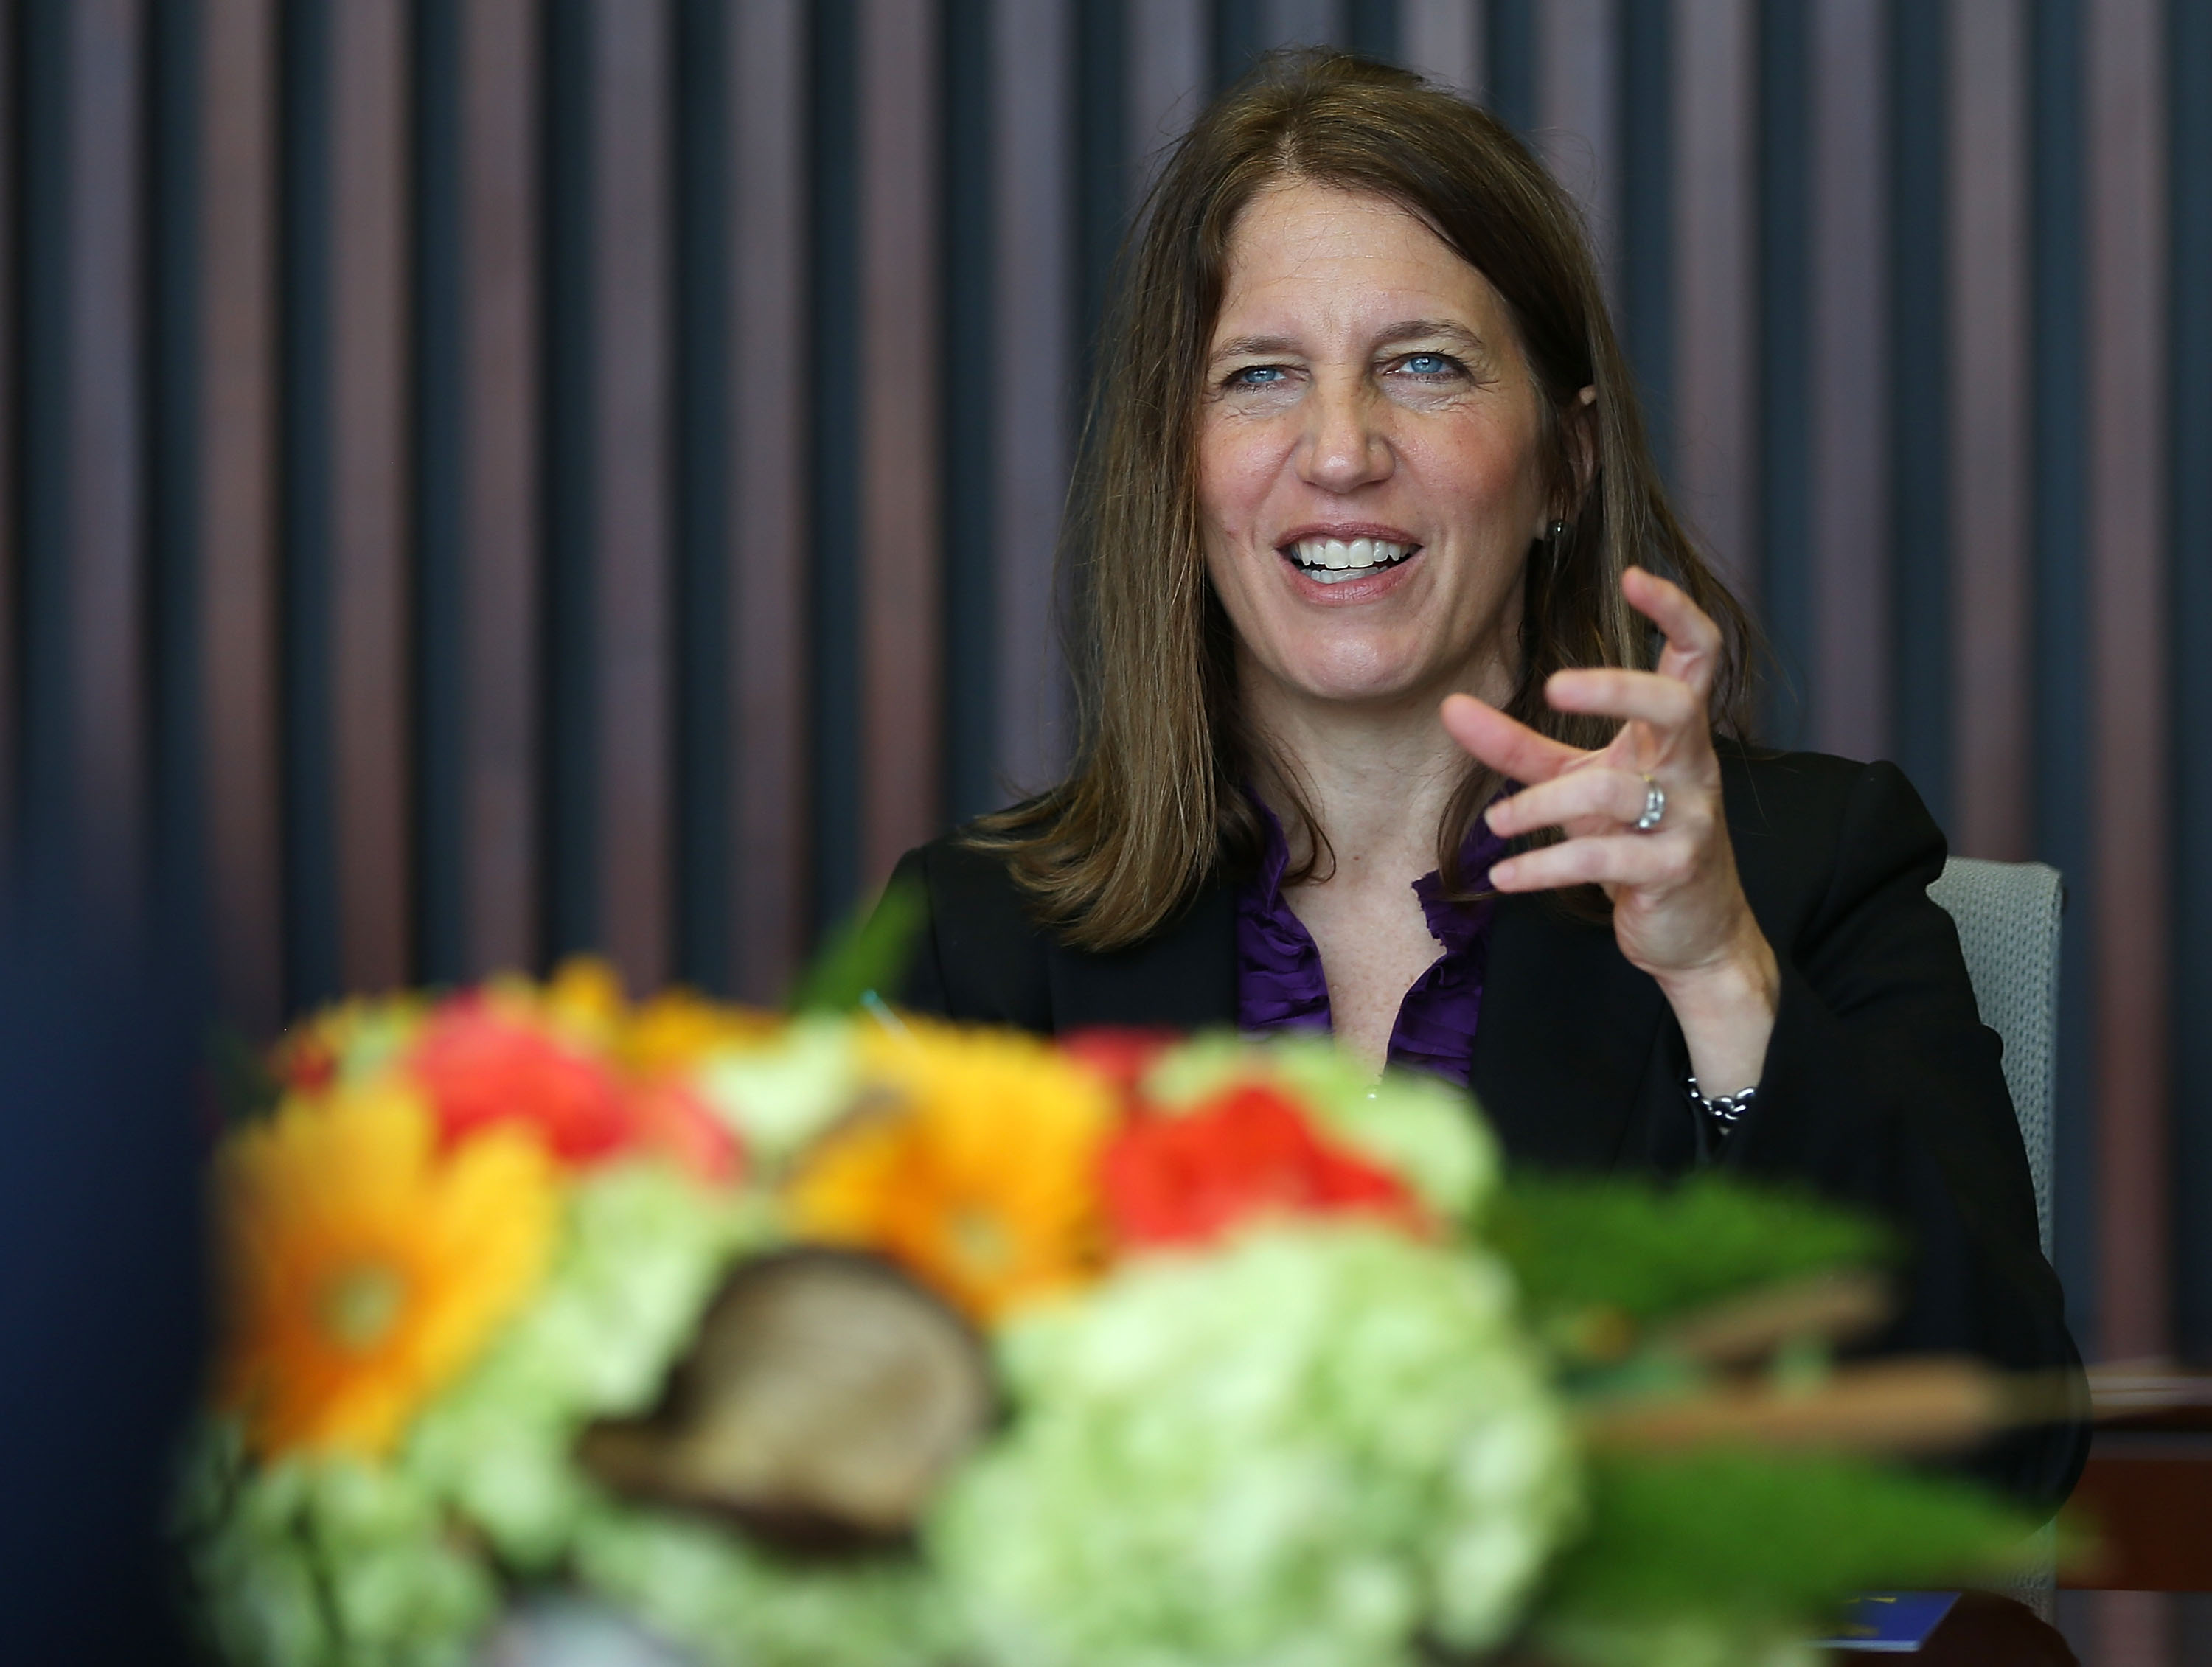 HHS Secretary Burwell Speaks On Open Enrollment Insurance Period At Miami Dade College